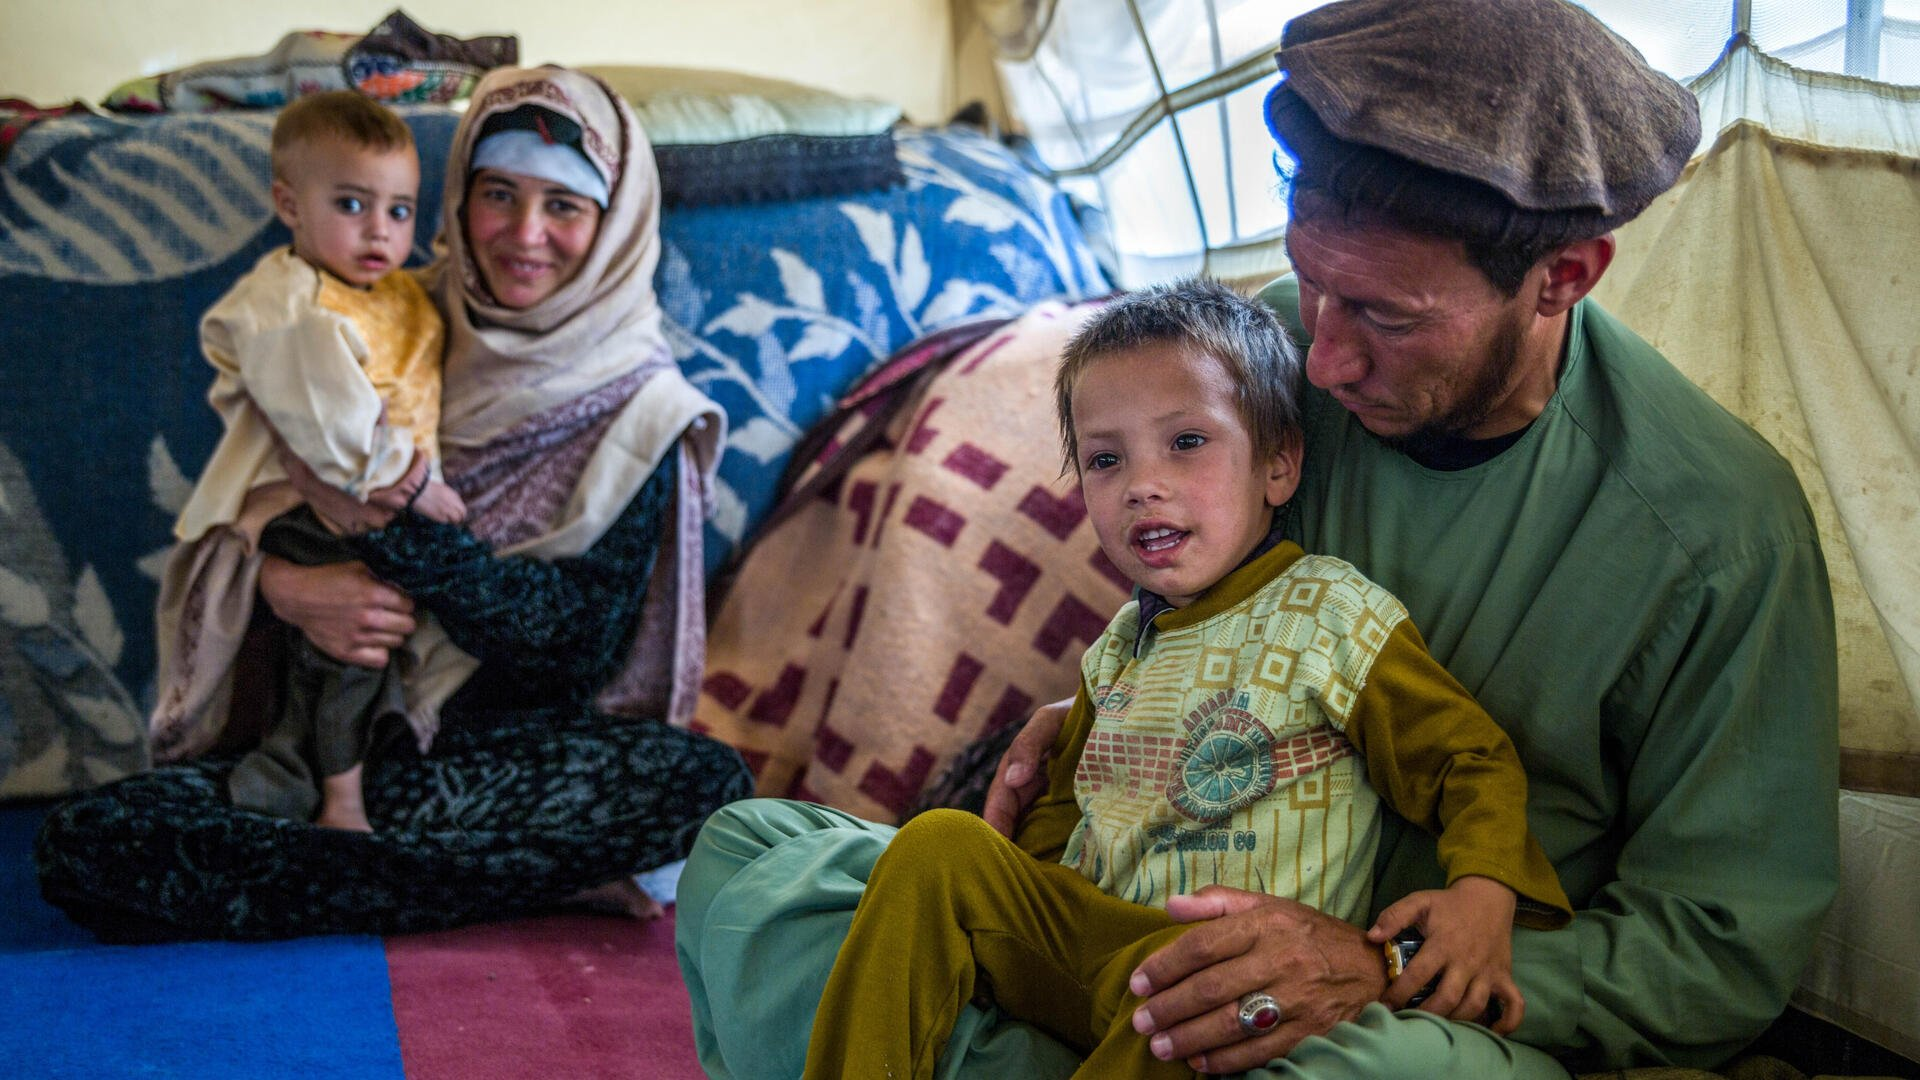 A mother and father in Afghanistan sit on the ground among blankets and pillows, each with a child on their lap. The boy in the front is smiling and his father is looking at him.